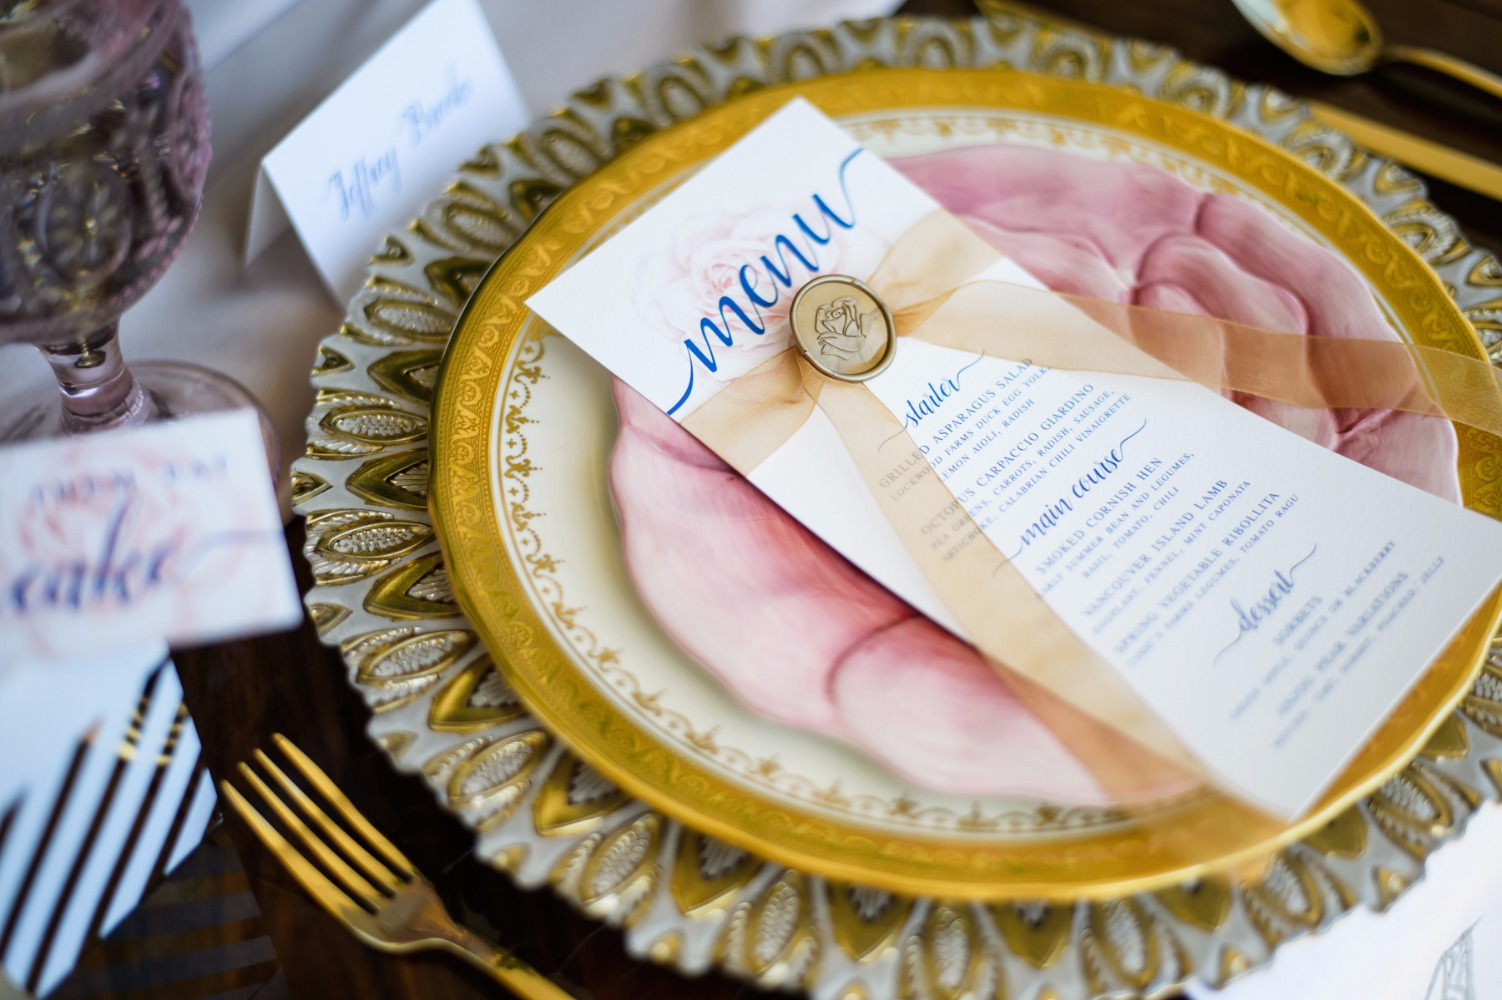 5_a-colorful-over-the-top-wedding-inspired-by-marie-antoinette.jpg